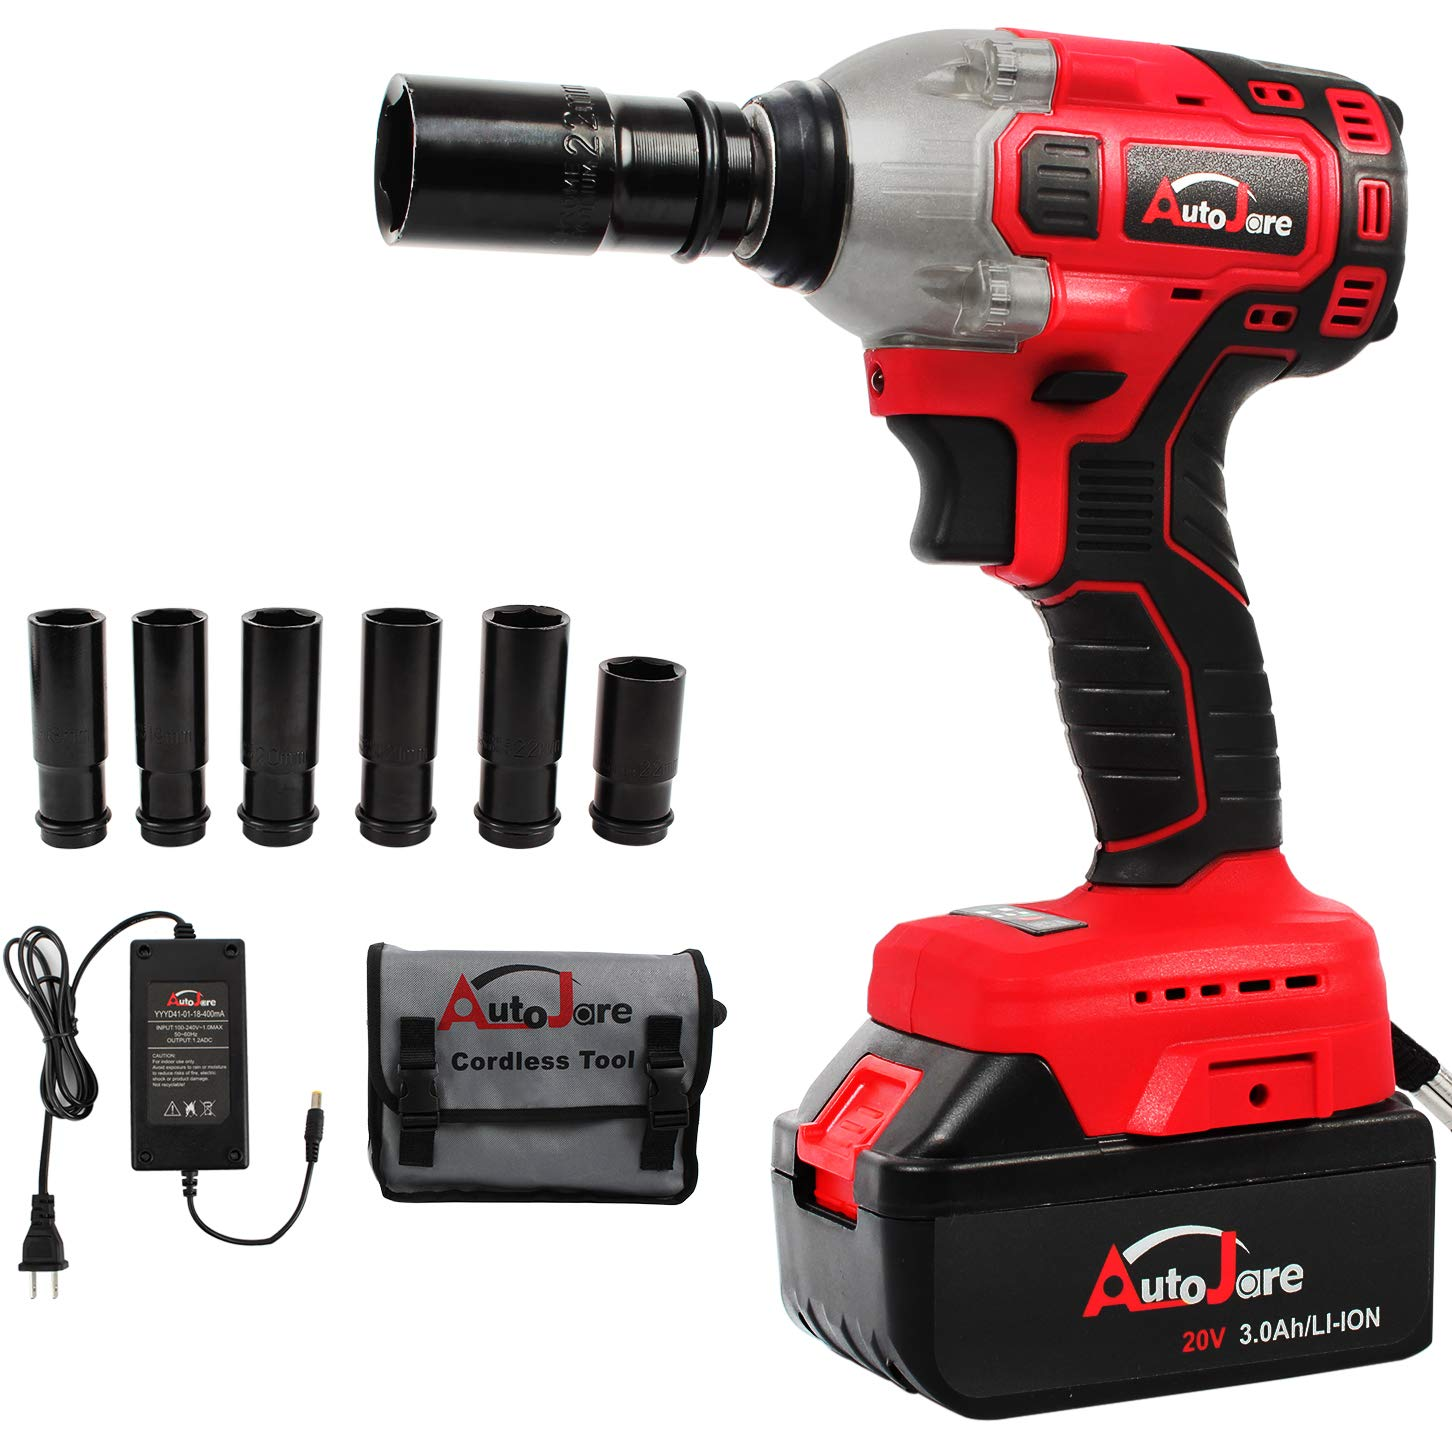 AUTOJARE Cordless Impact Wrench Review